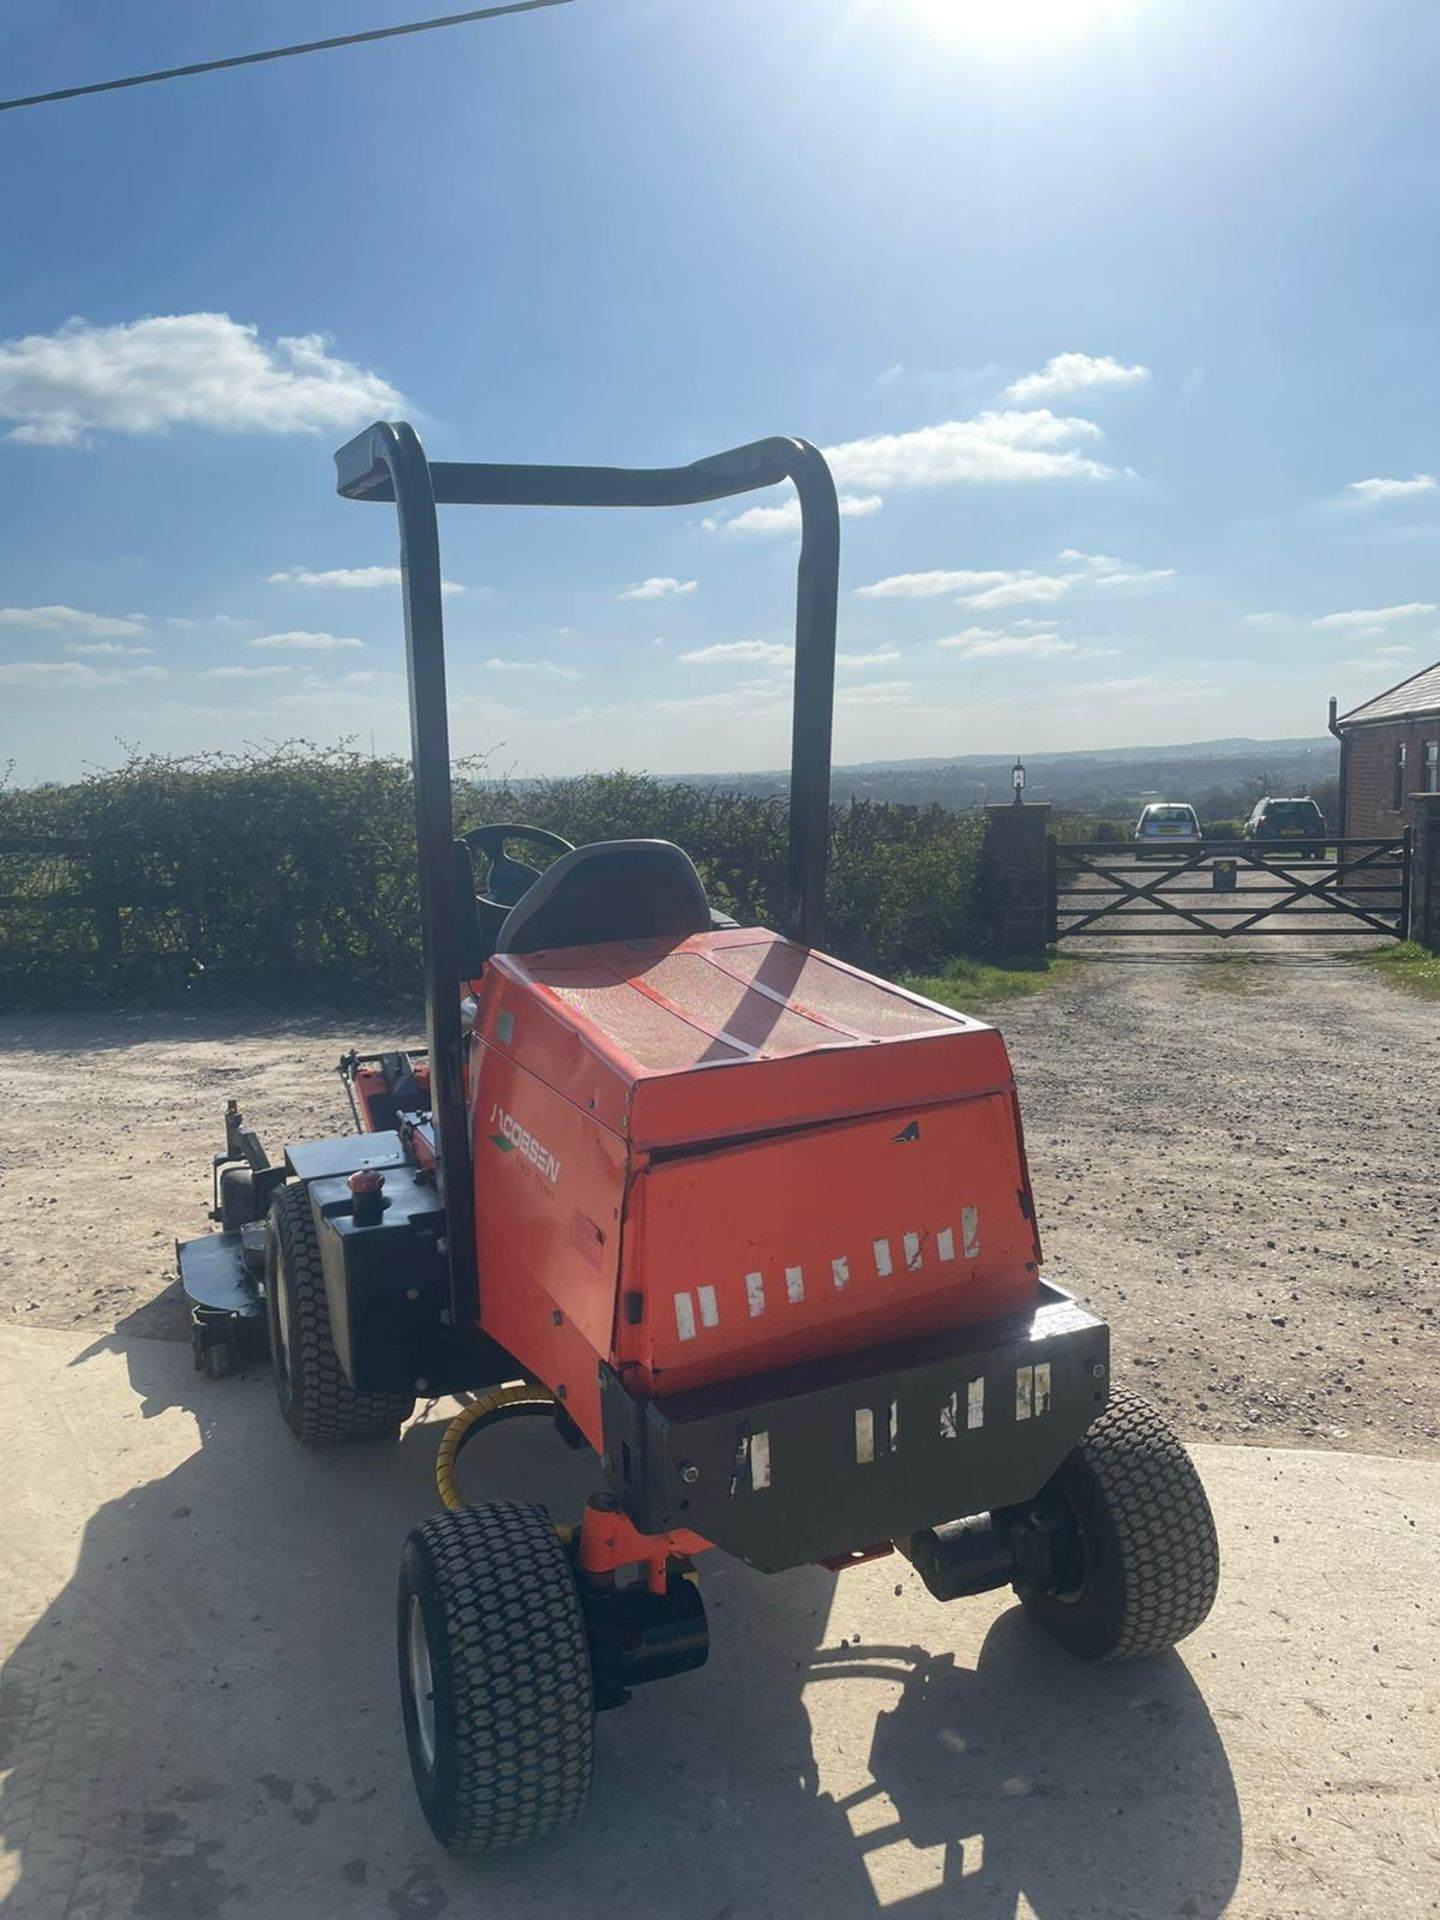 2013 JACOBSON 628D RIDE ON LAWN MOWER OUT FRONT, VERY GOOD CONDITION, 4 WHEEL DRIVE *NO VAT* - Image 2 of 7